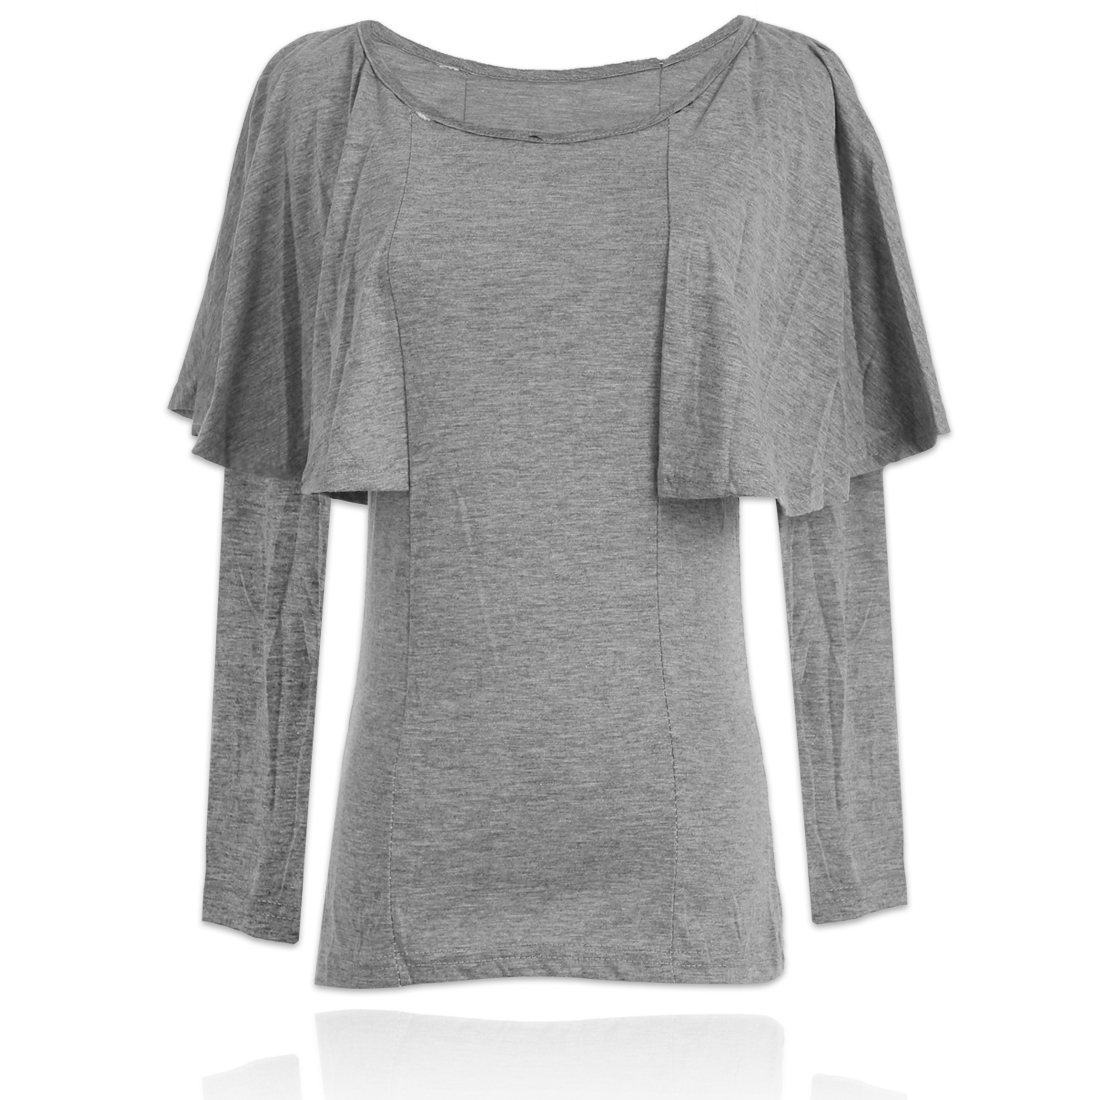 Autumn Leisure Round Neck Long Sleeves Pure Gray T-shirt XS for Women